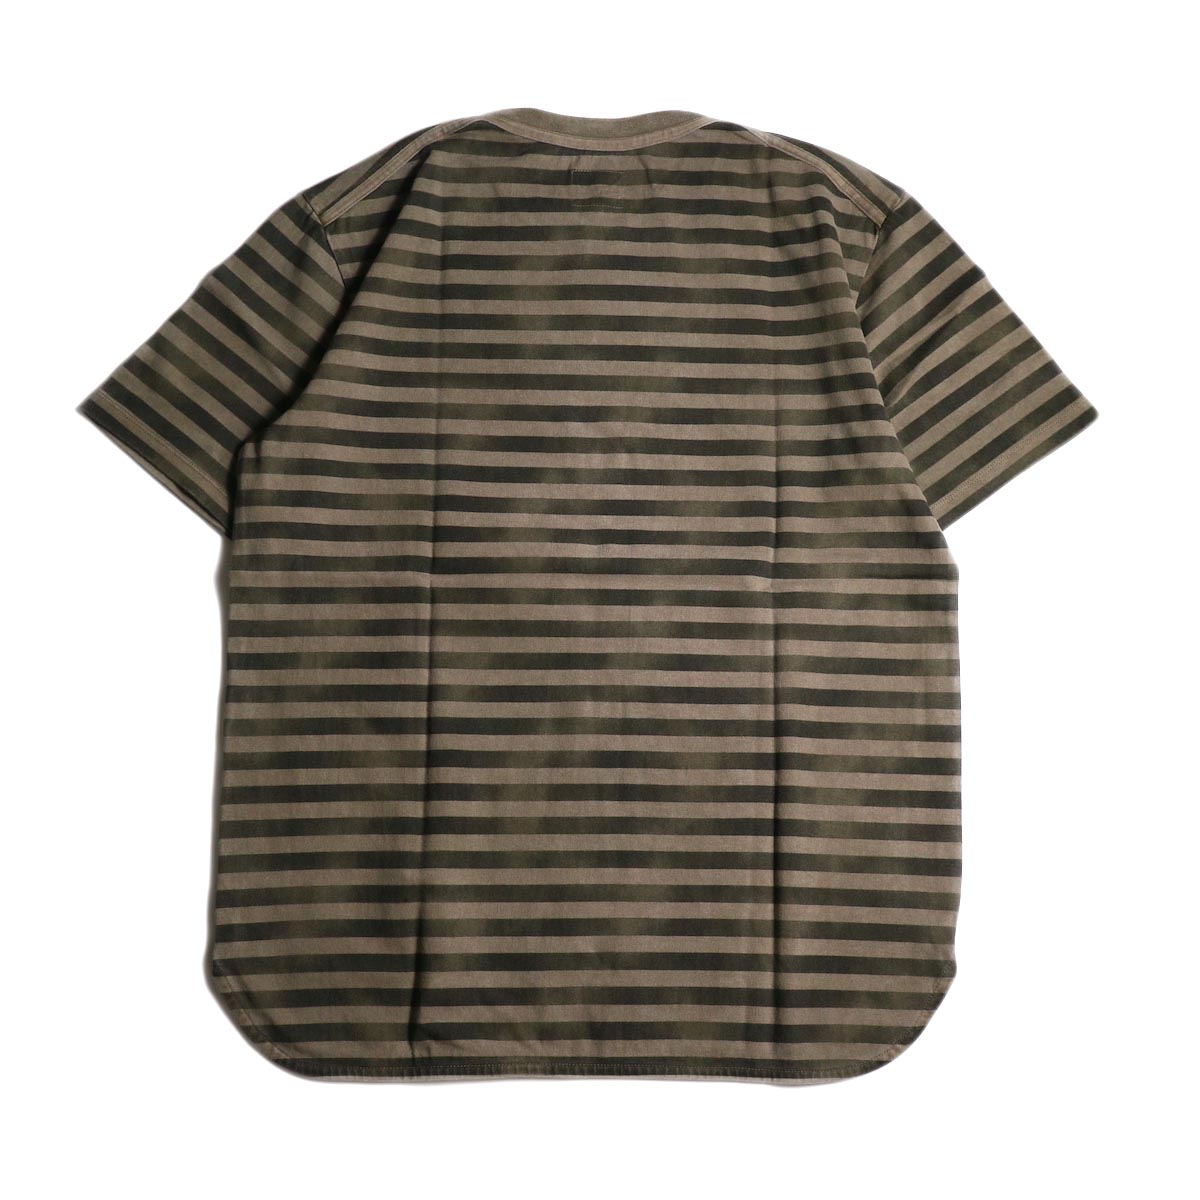 CURLY / FROSTED SS BORDER TEE (Beige/Black)背面